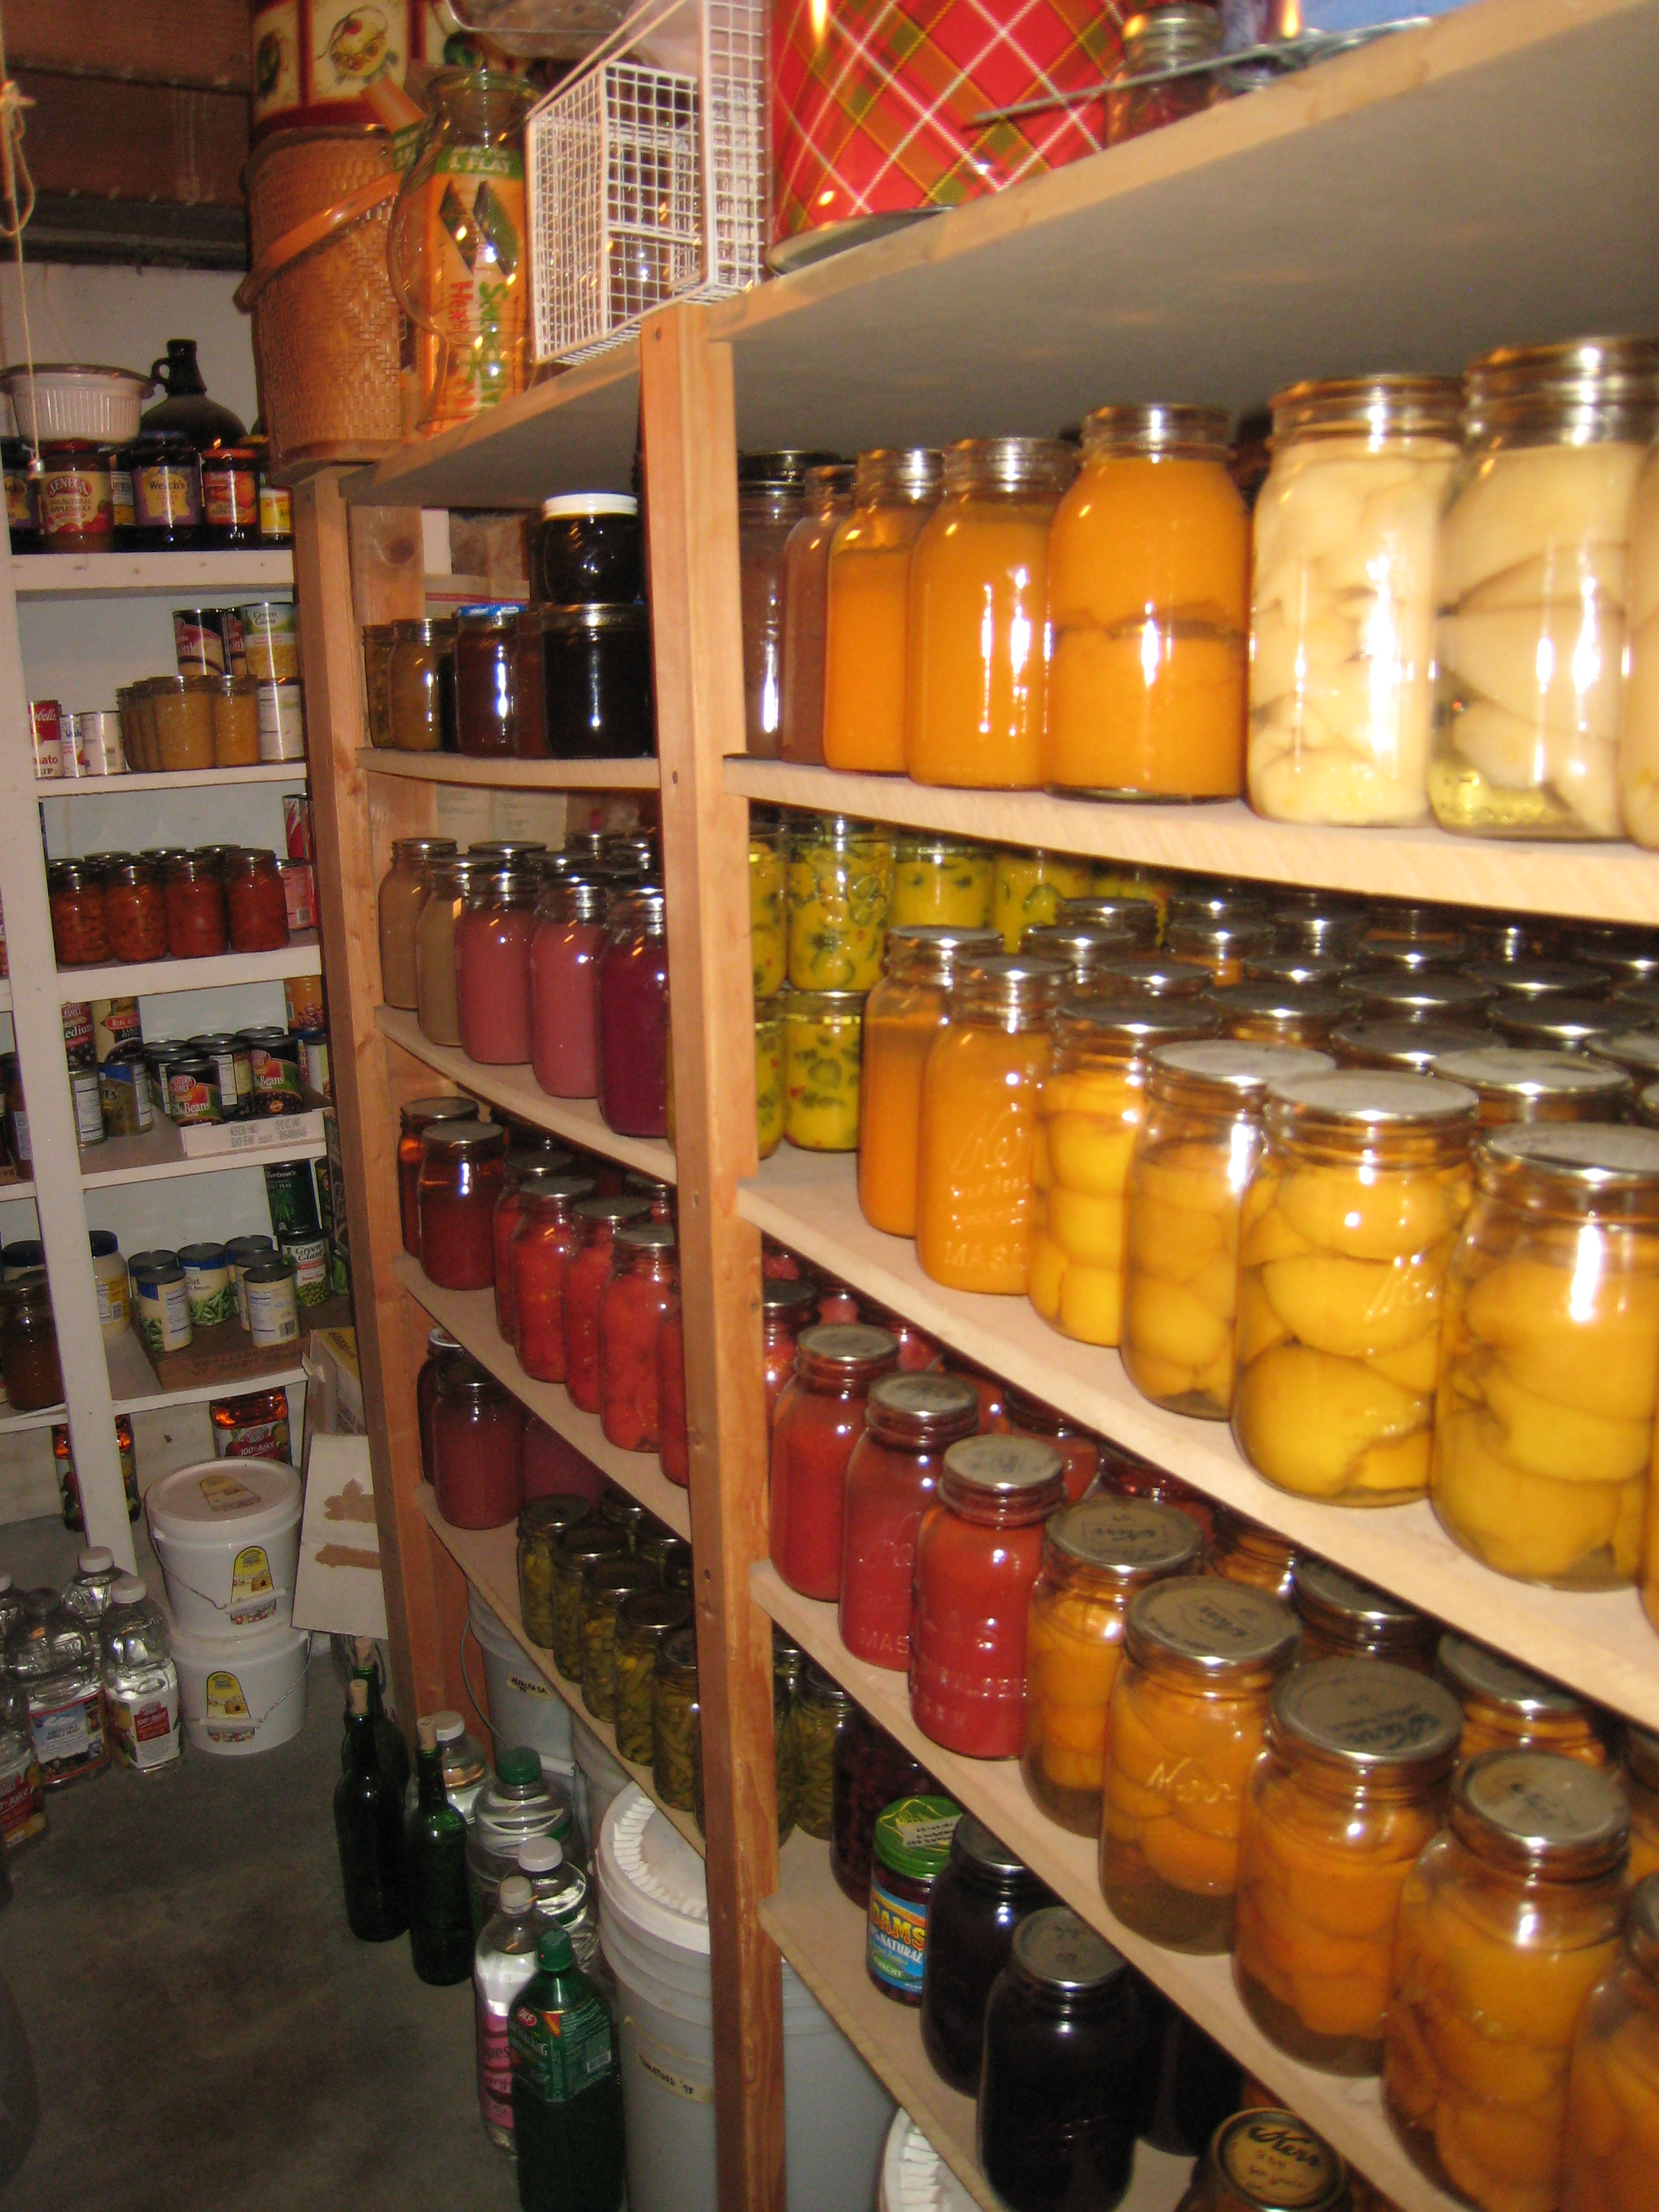 Thumbnail for the post titled: Long-Term Food Storage: Tips & Methods